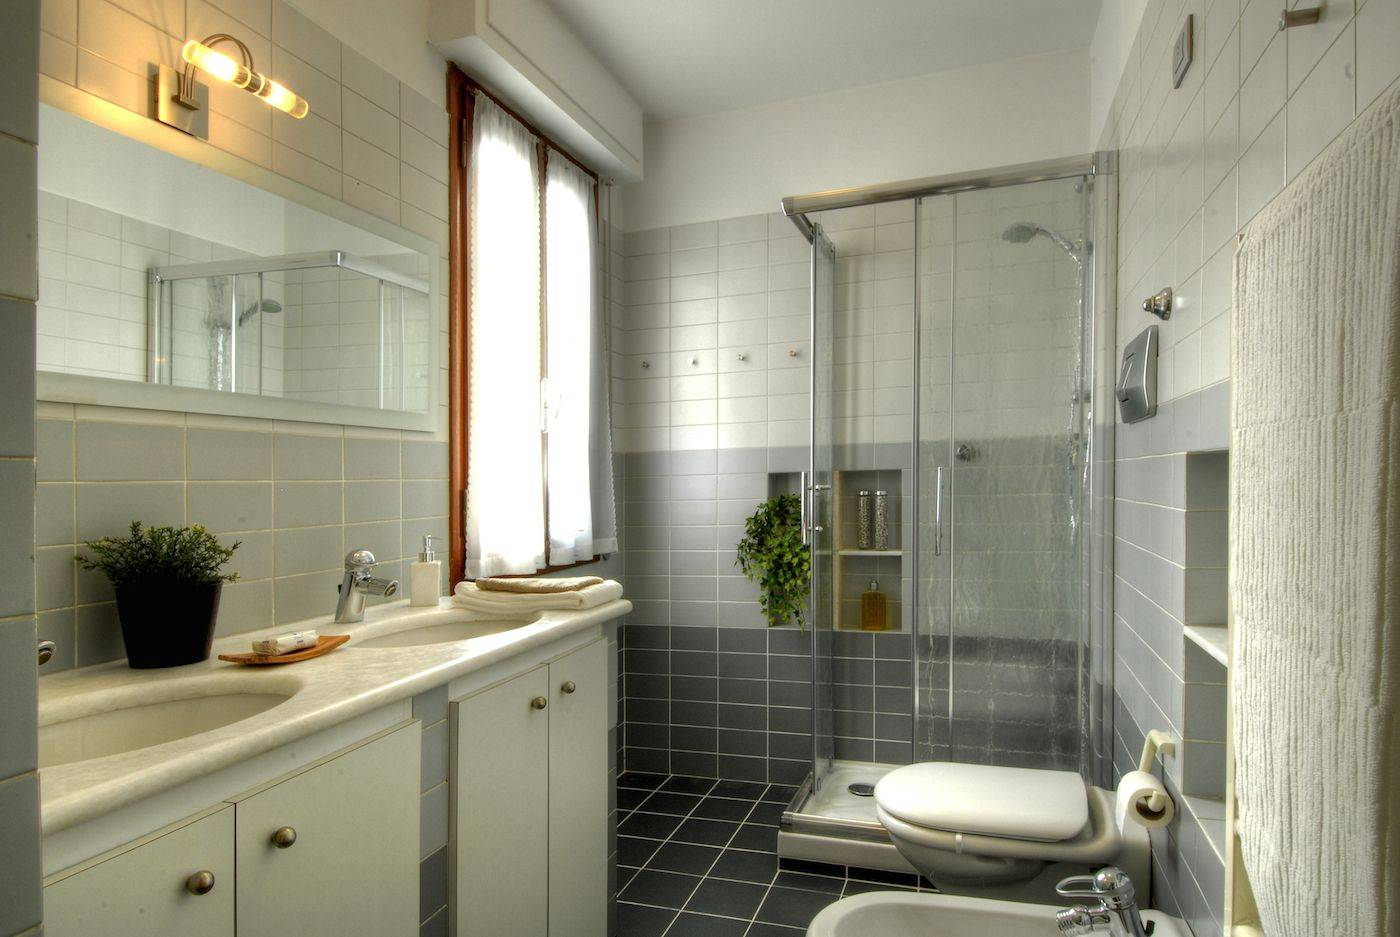 the main bathroom with large shower cabin